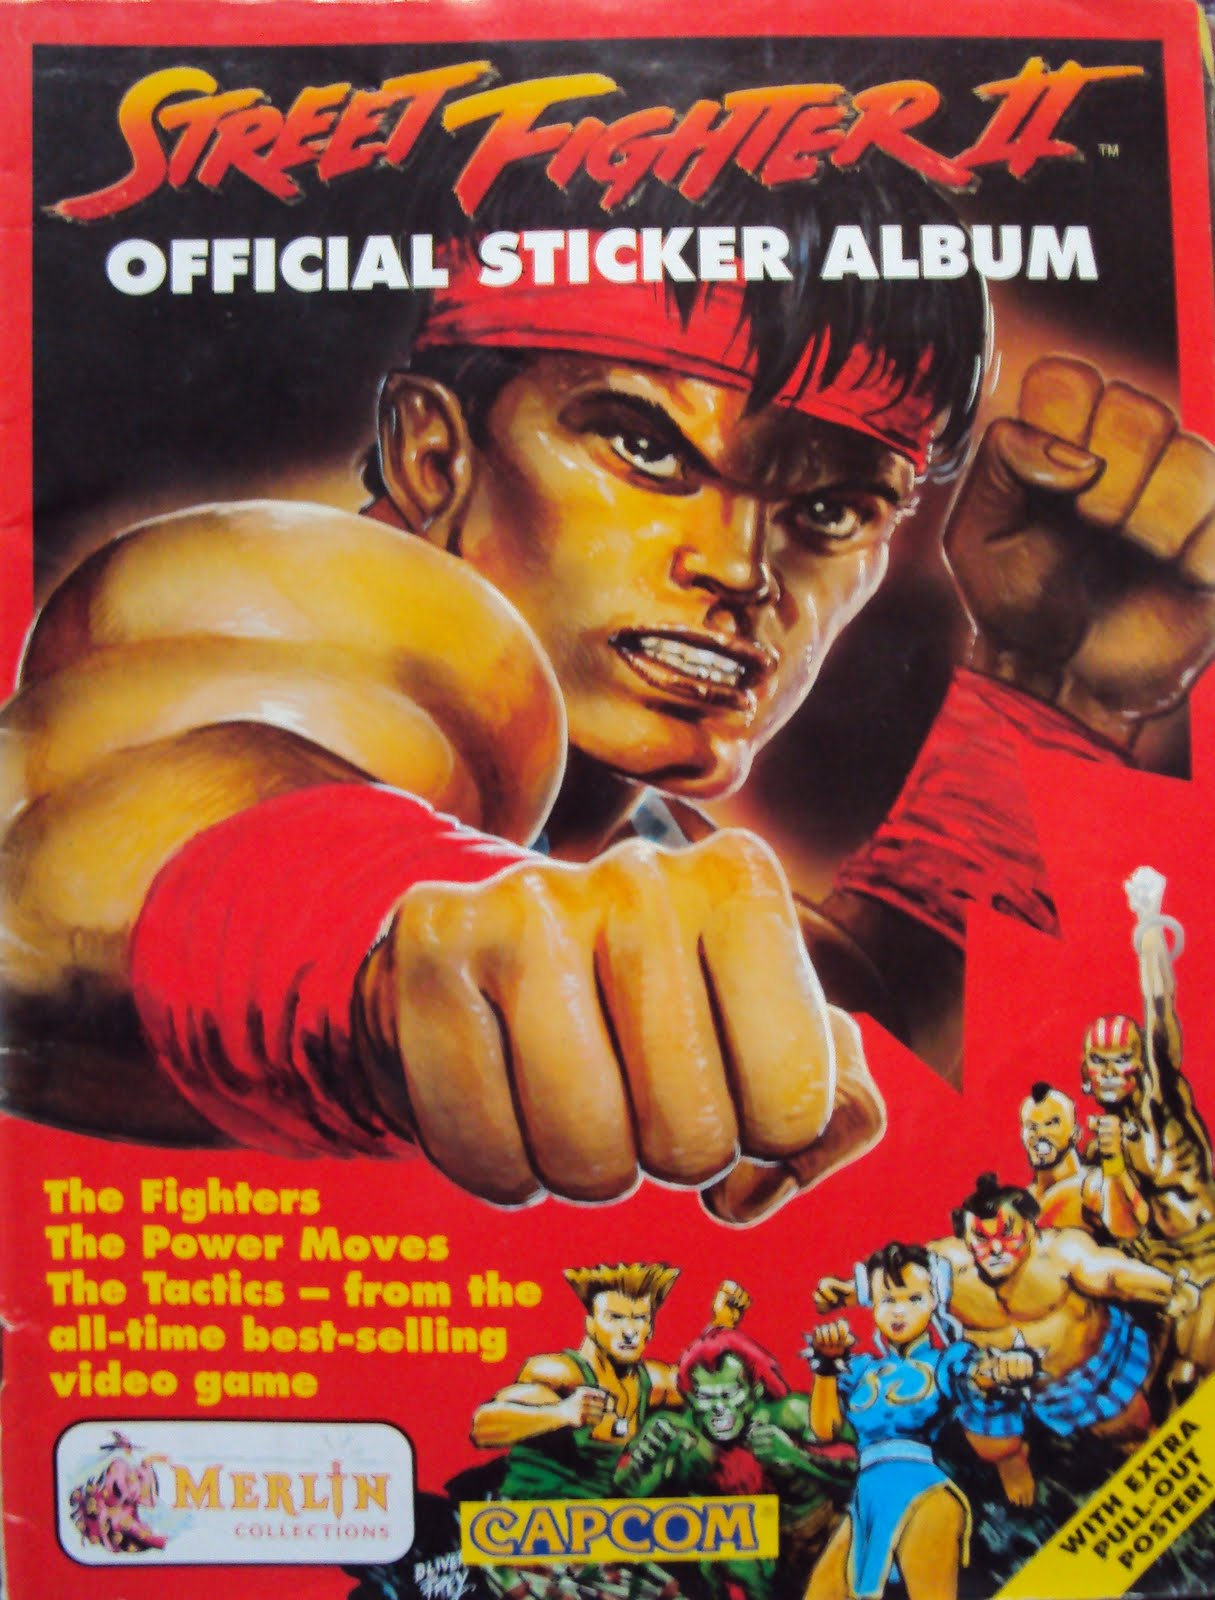 Now a look at both street fighter sticker albums first the original this album has some great oli frey artwork all the way through whether as the